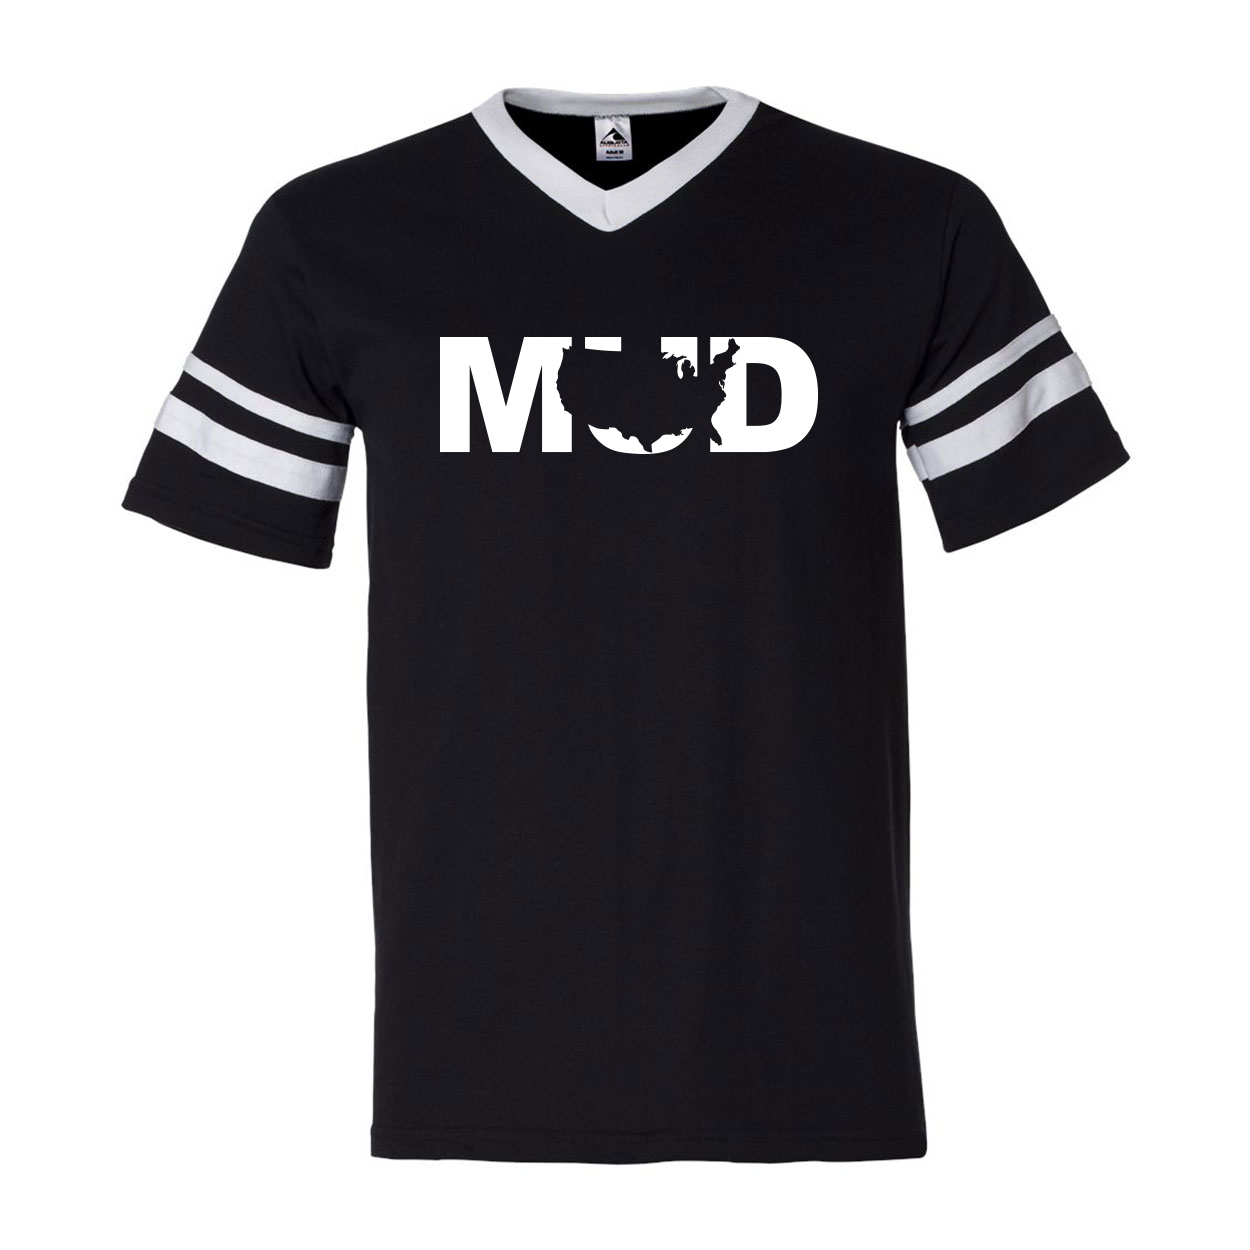 Mud United States Classic Premium Striped Jersey T-Shirt Black/White (White Logo)